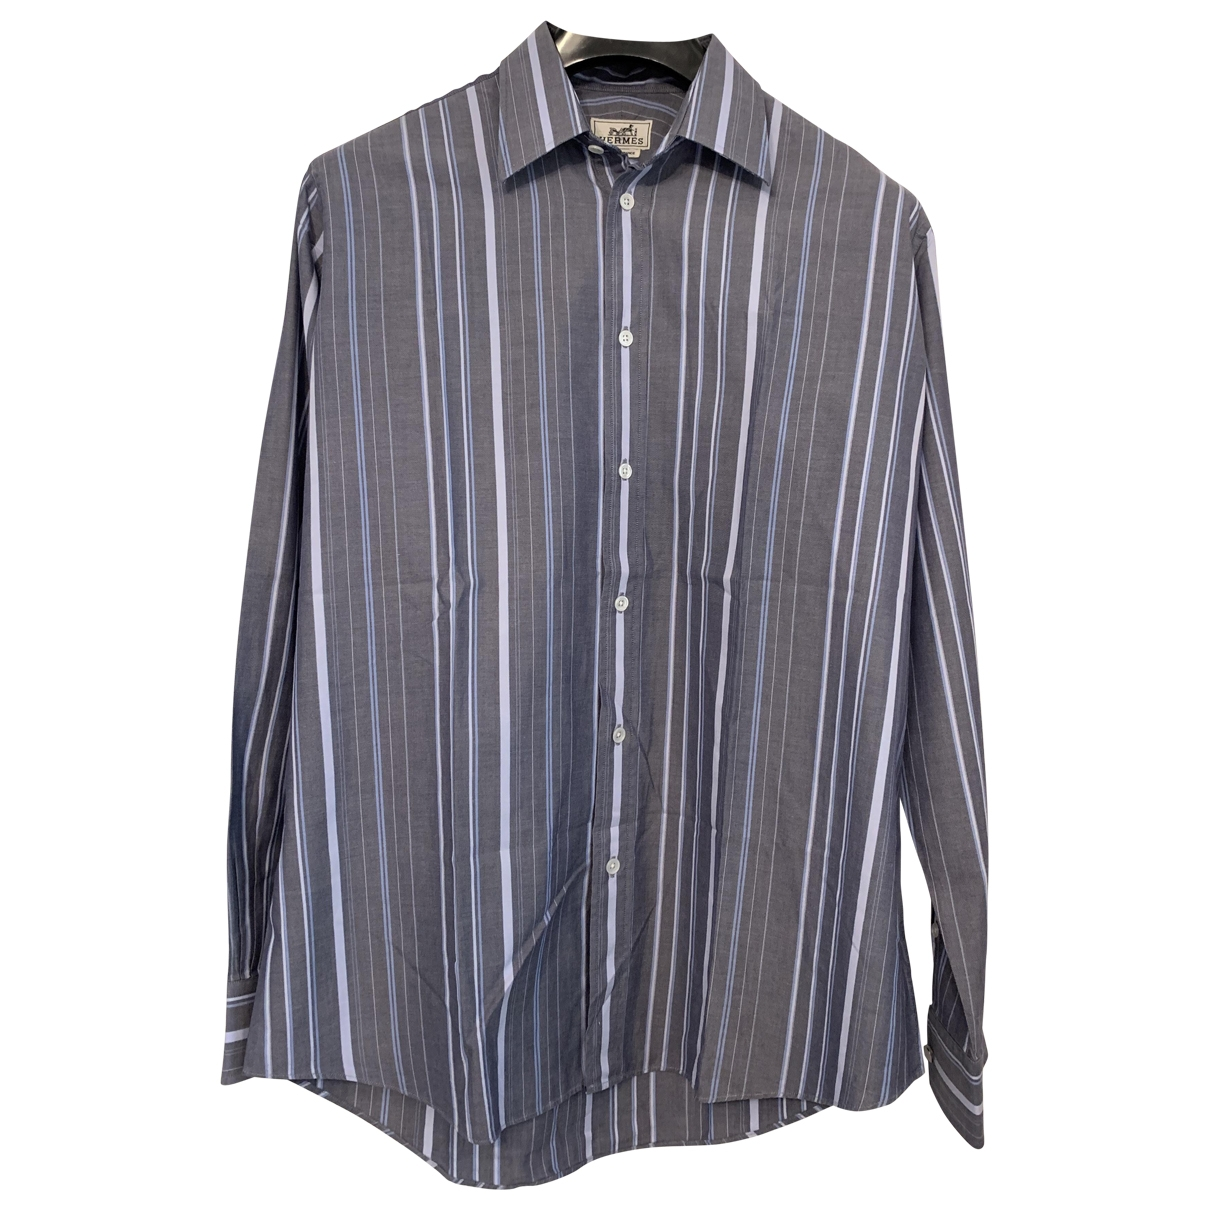 Hermès \N Grey Cotton Shirts for Men 40 EU (tour de cou / collar)